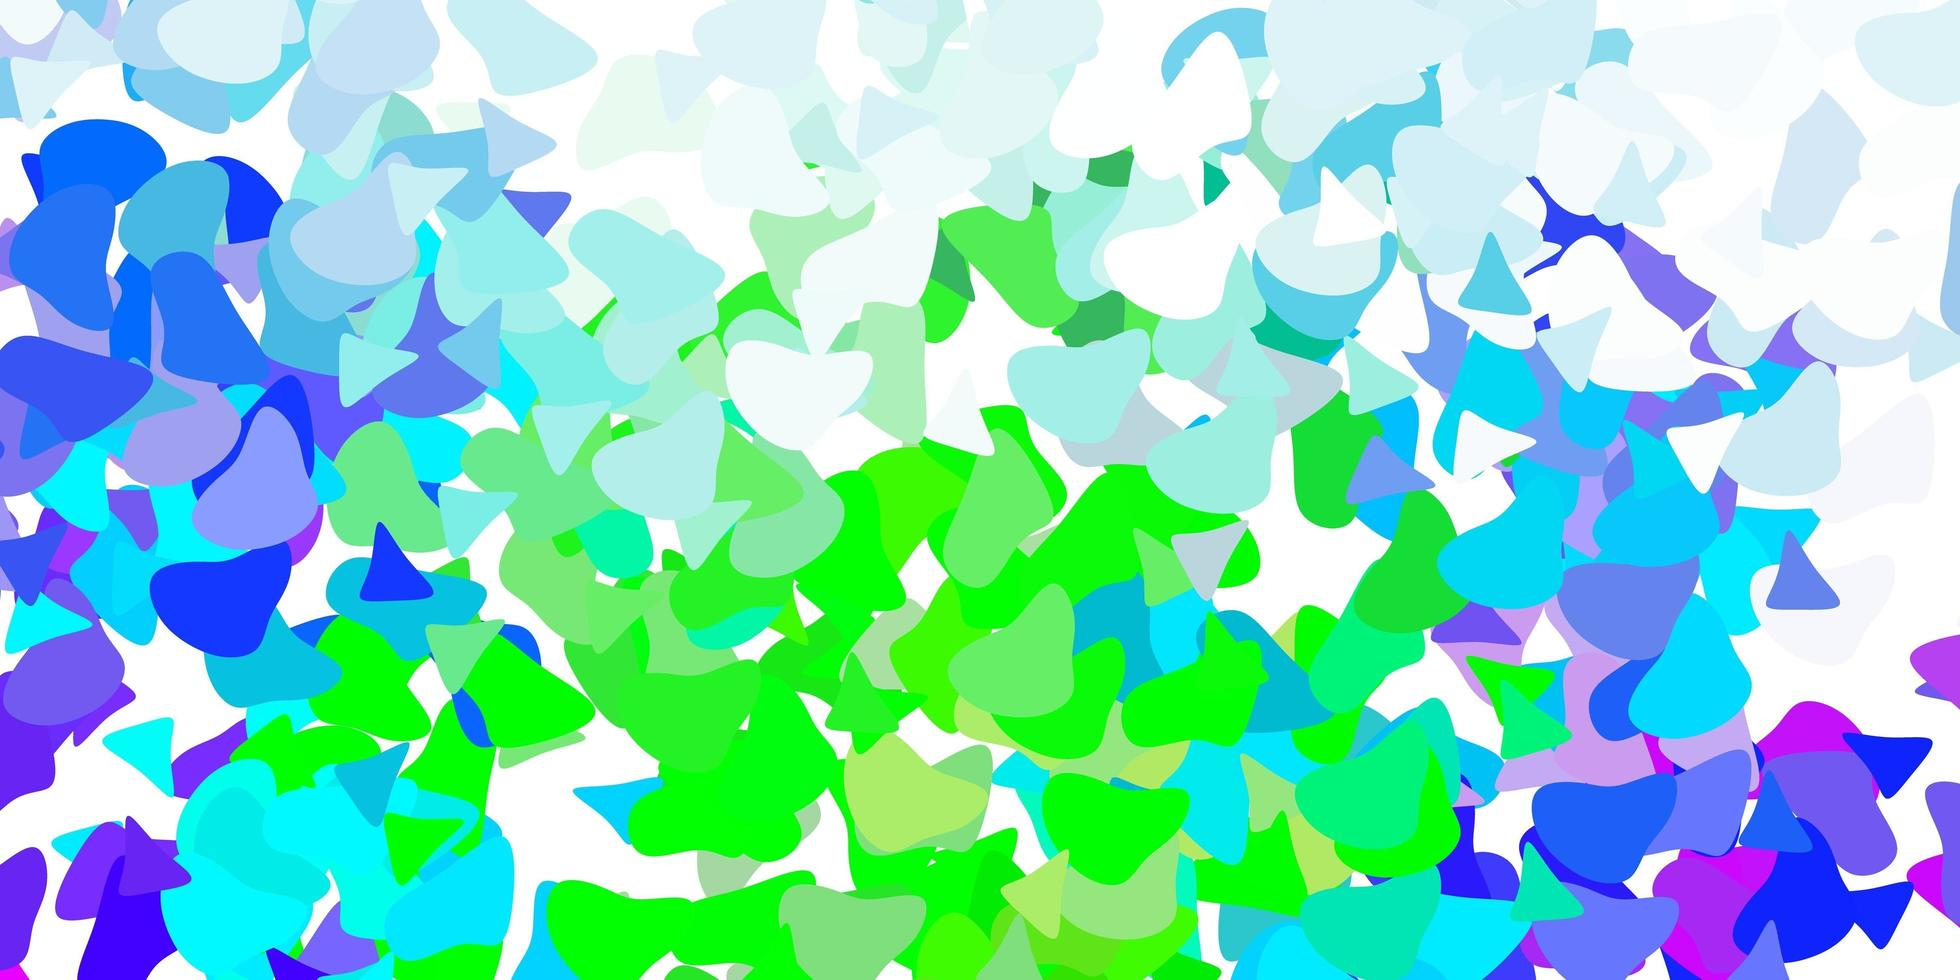 Light multicolor vector backdrop with chaotic shapes.